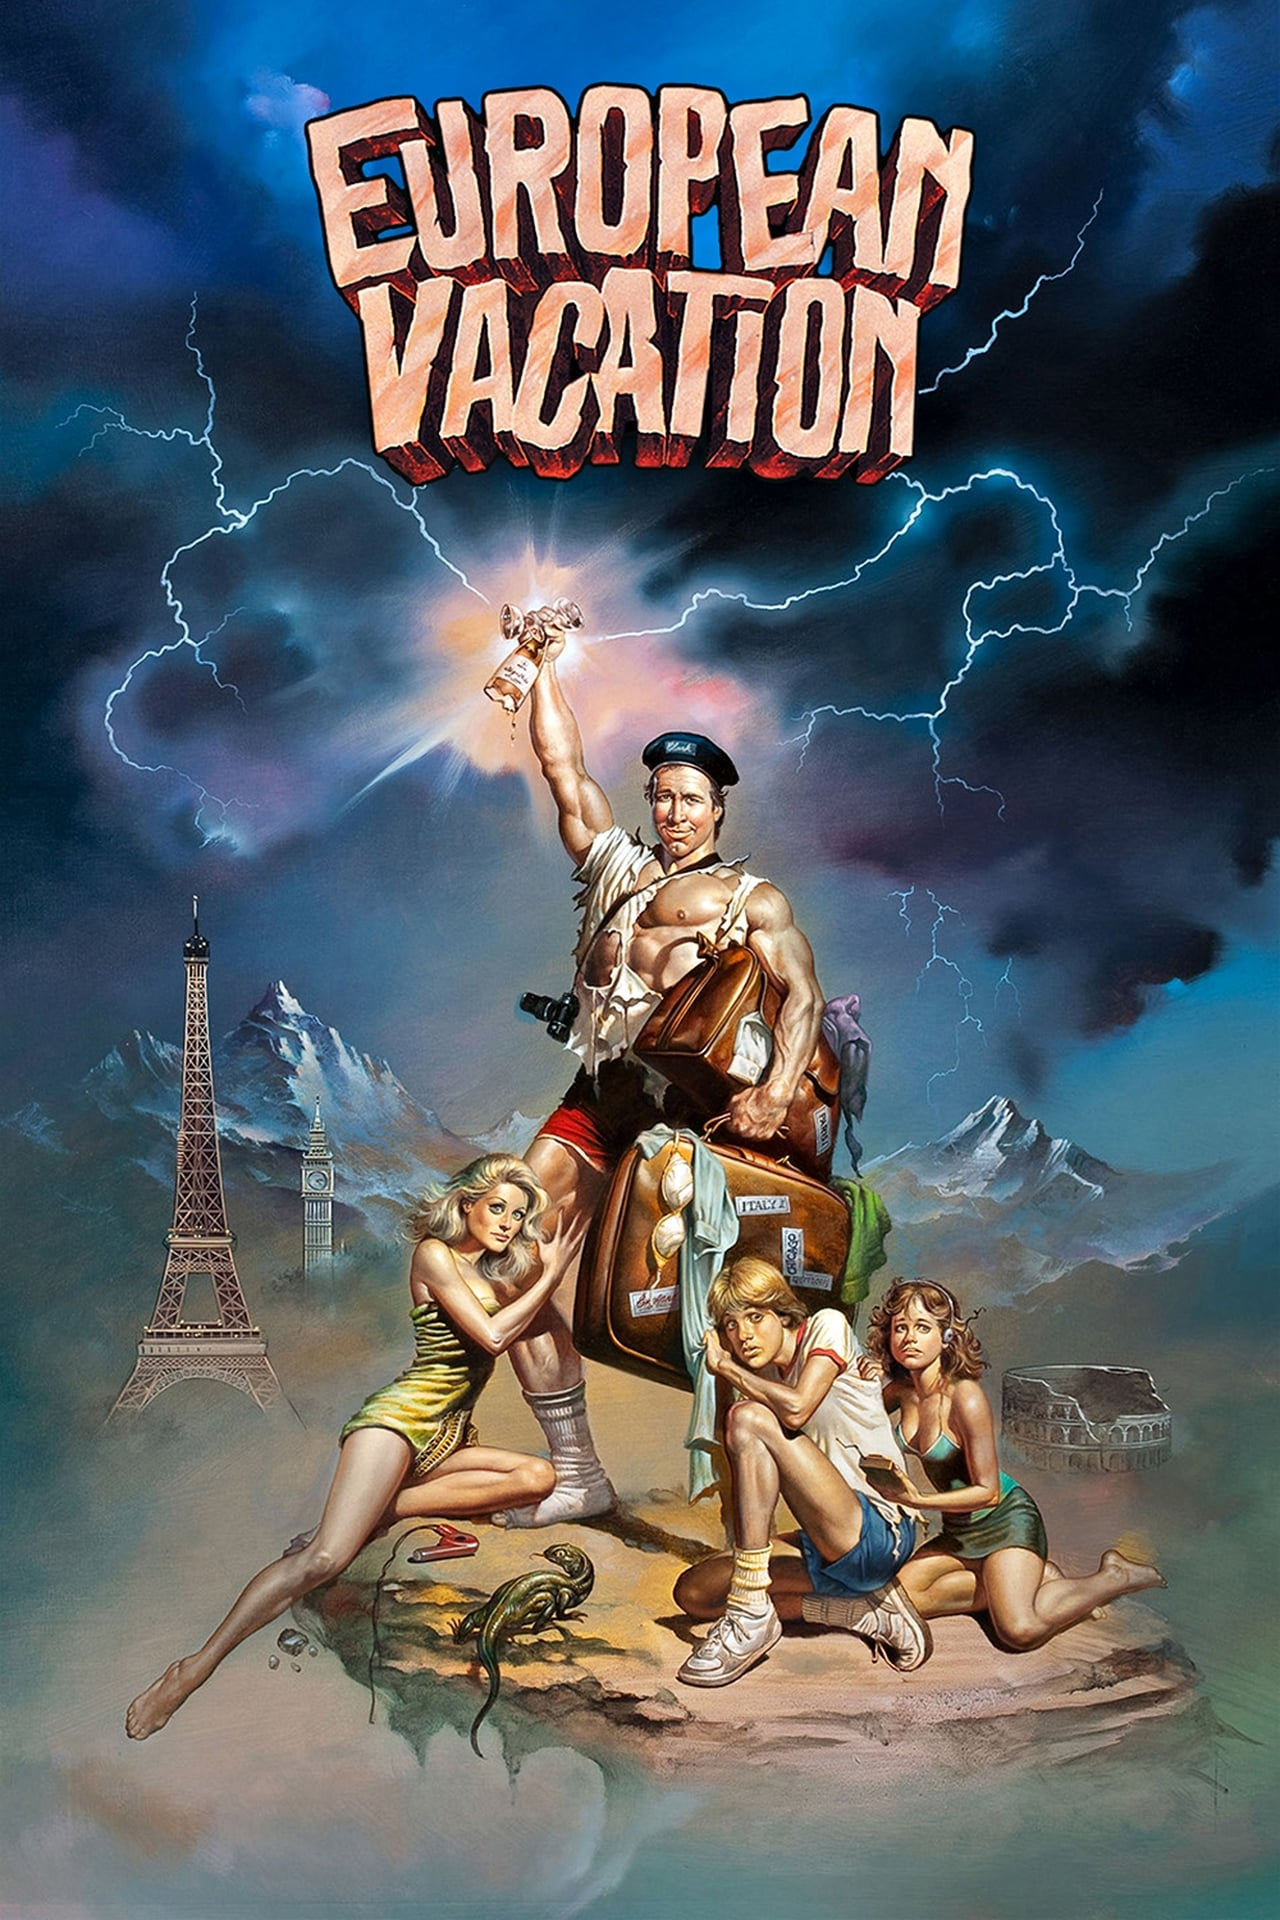 National Lampoons European Vacation wiki synopsis